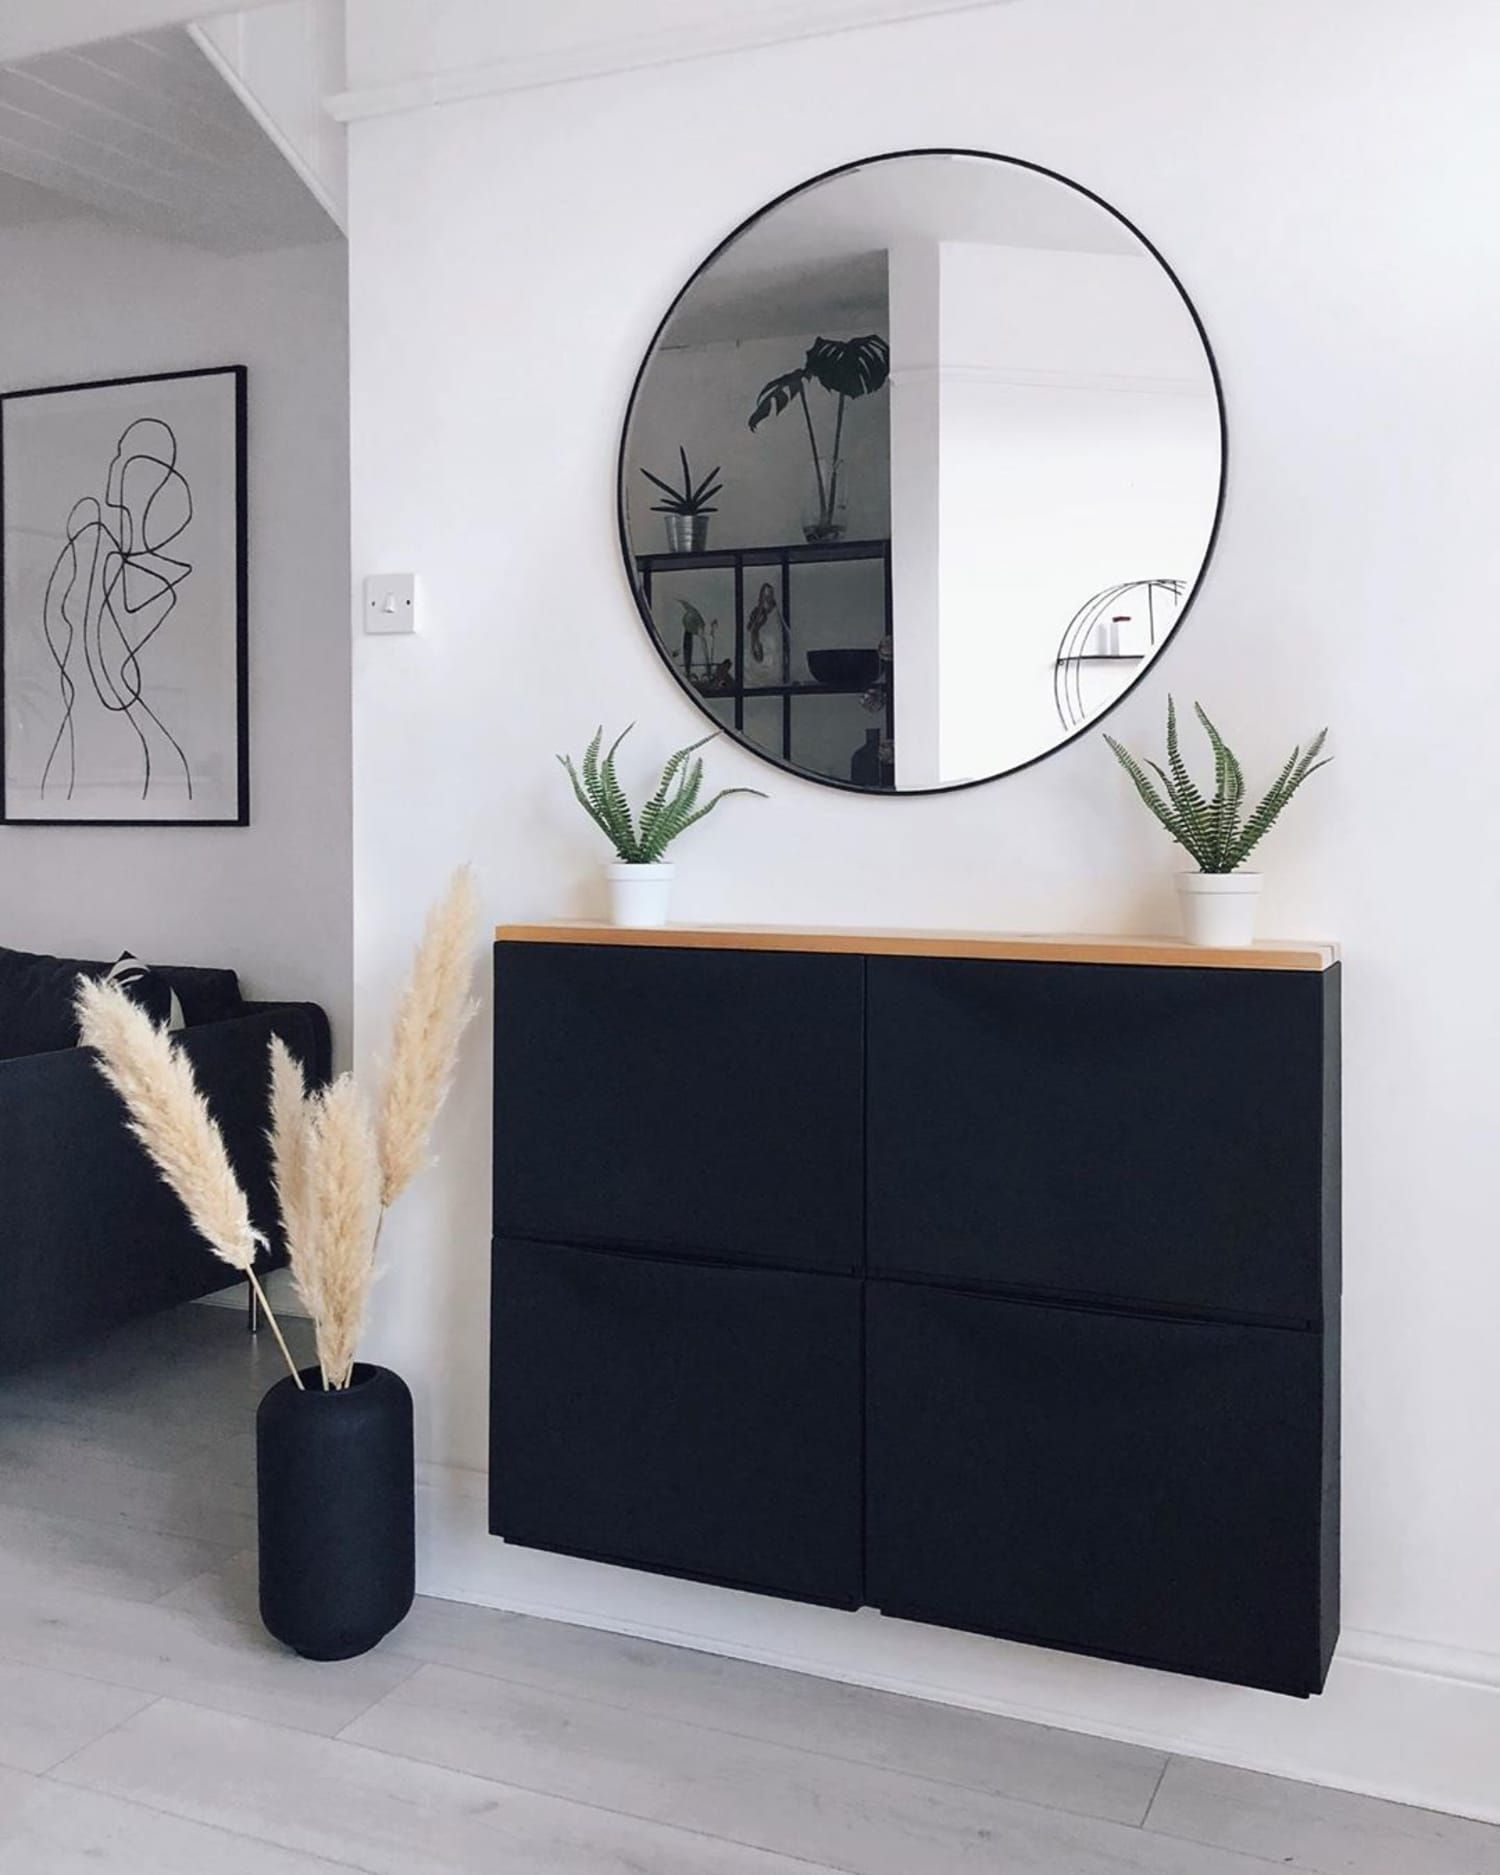 IKEA TRONES Hacks That'll Luxe up This Basic Storage Unit